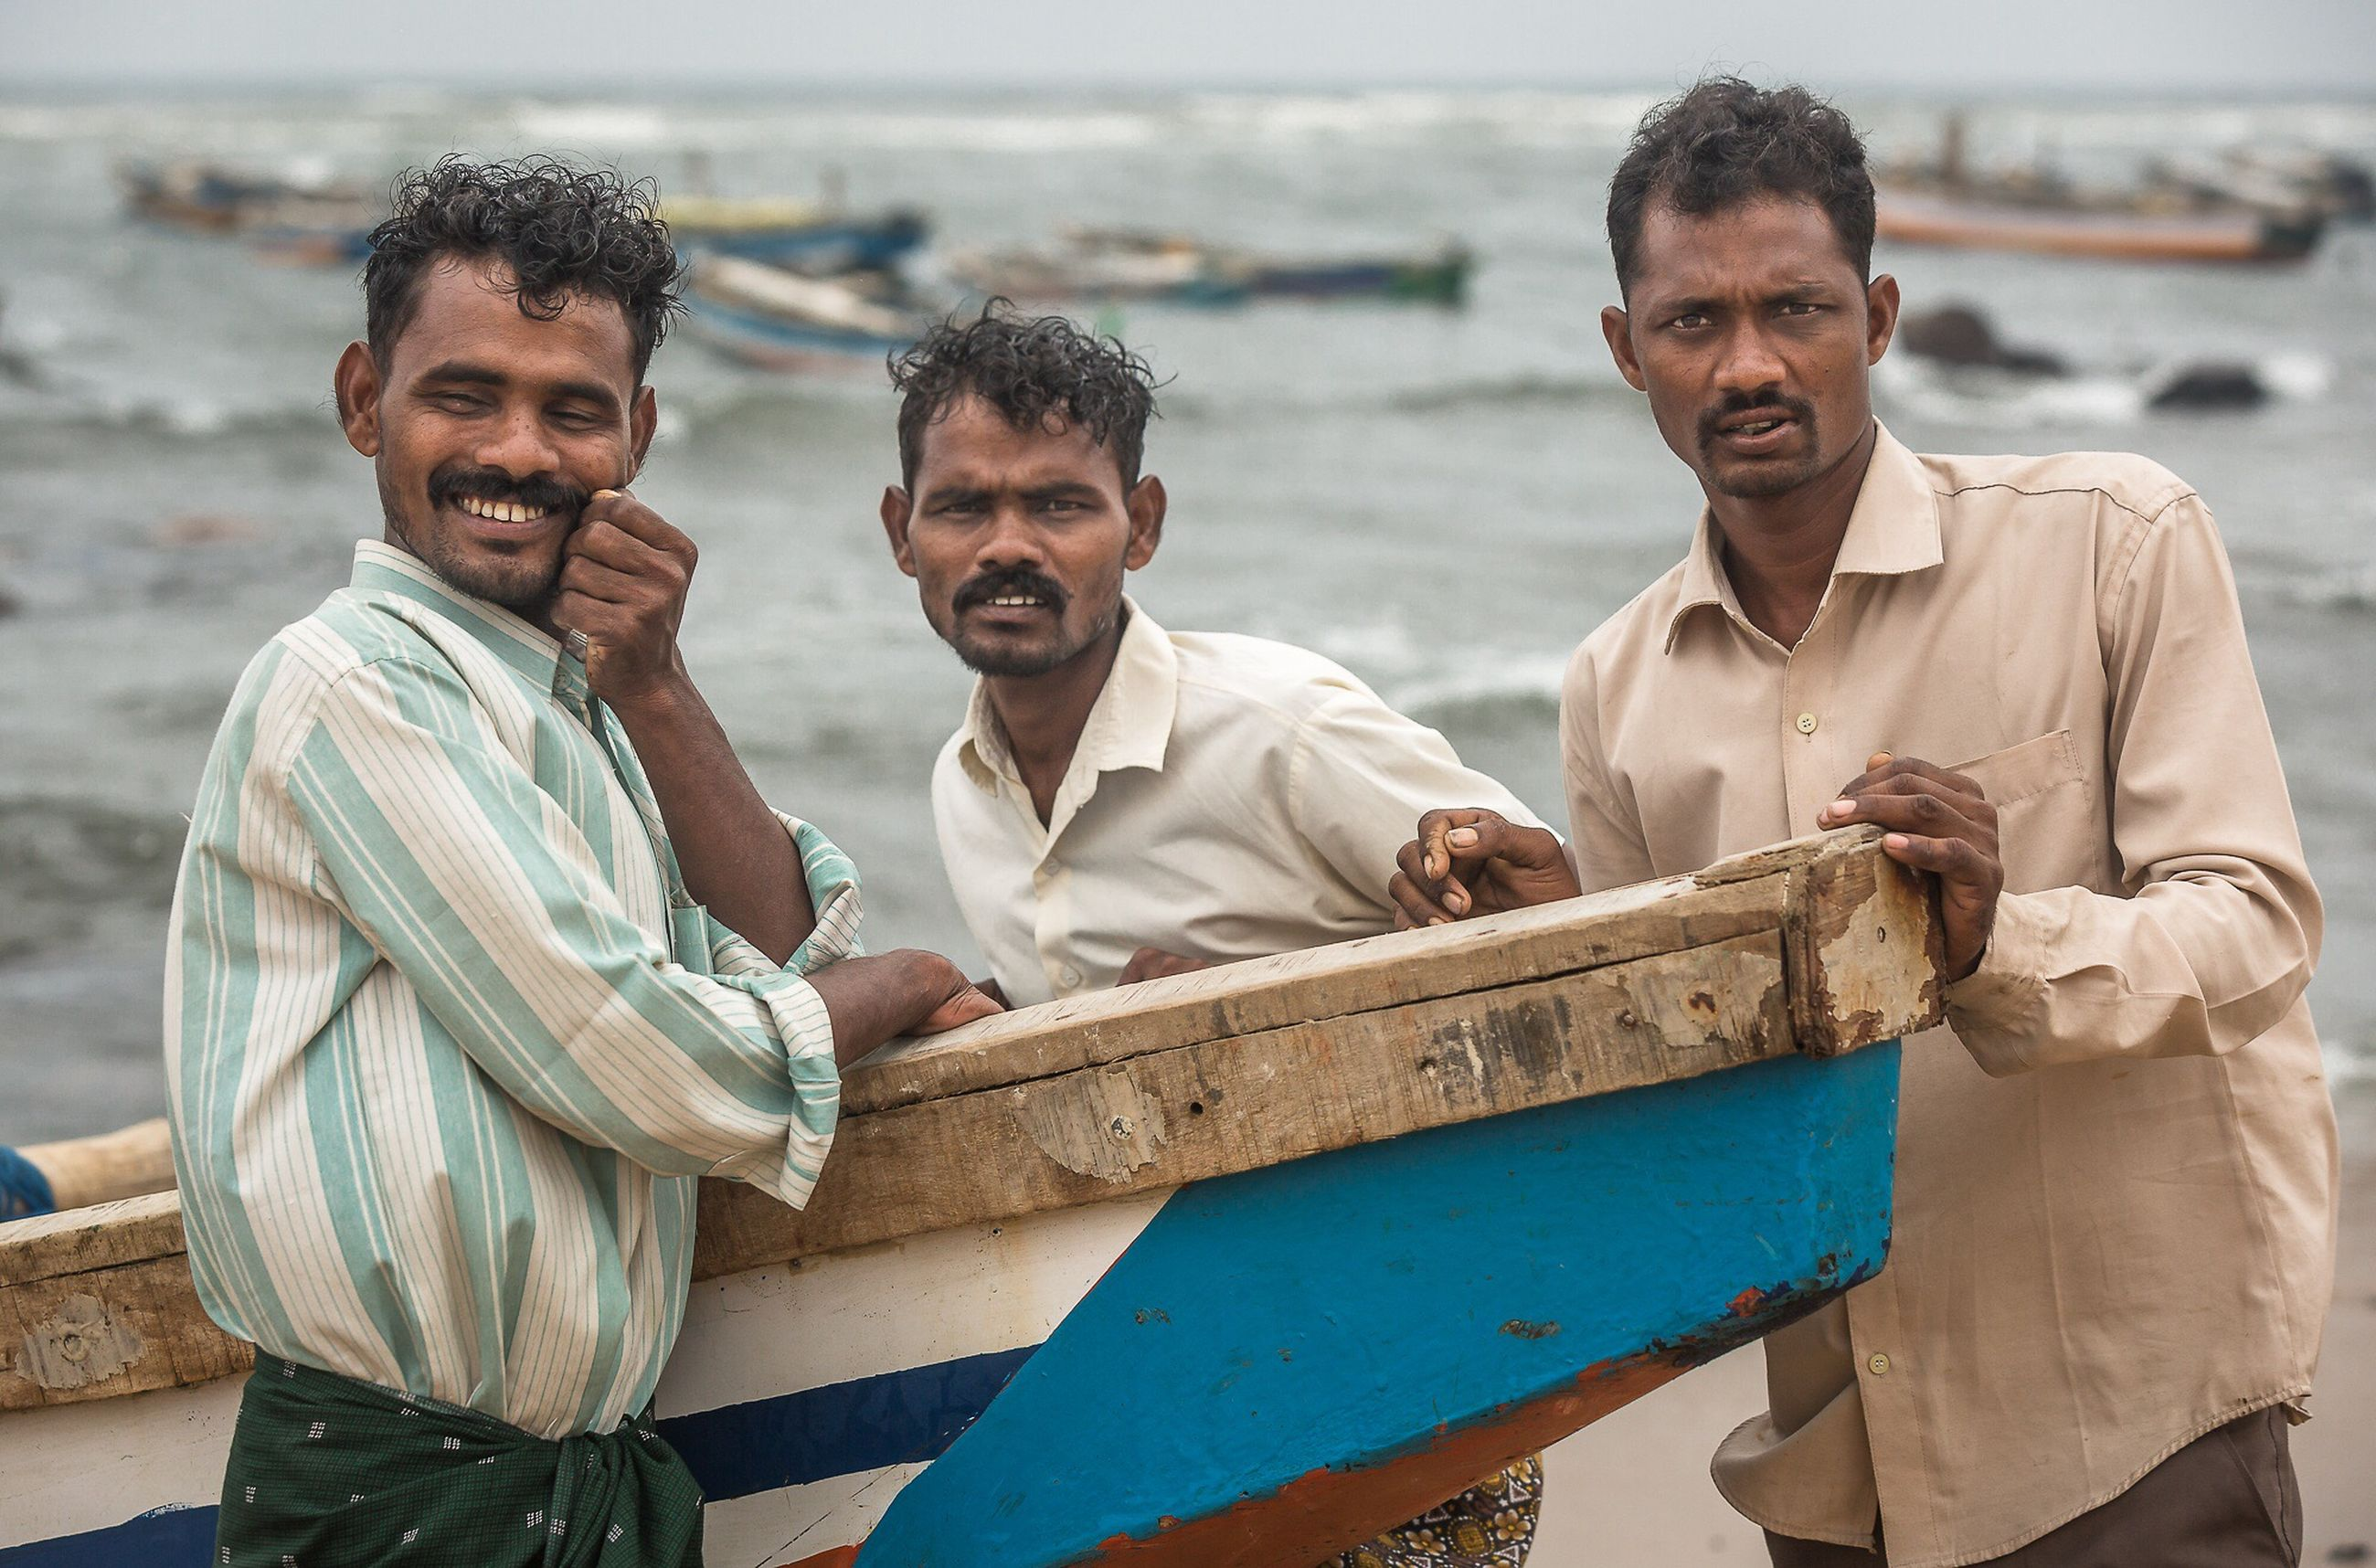 lifestyles, young men, person, leisure activity, casual clothing, togetherness, smiling, water, sitting, mid adult men, happiness, bonding, front view, nautical vessel, boys, young adult, men